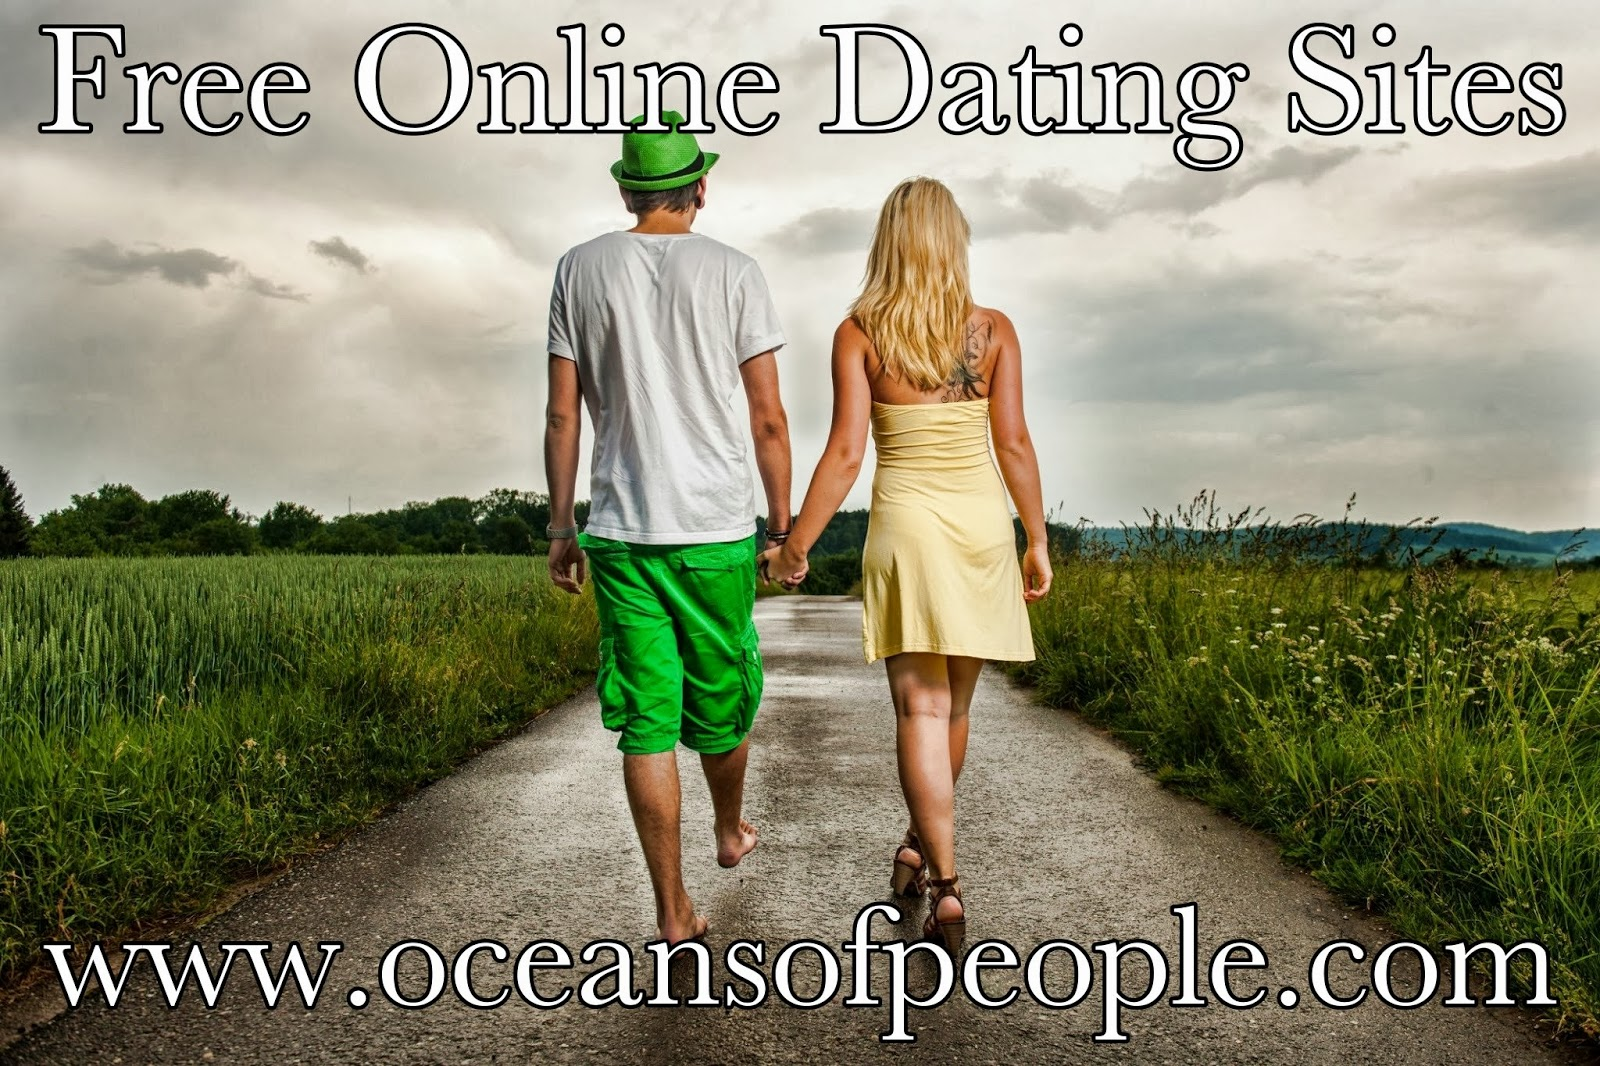 Free dating sites for lonely people